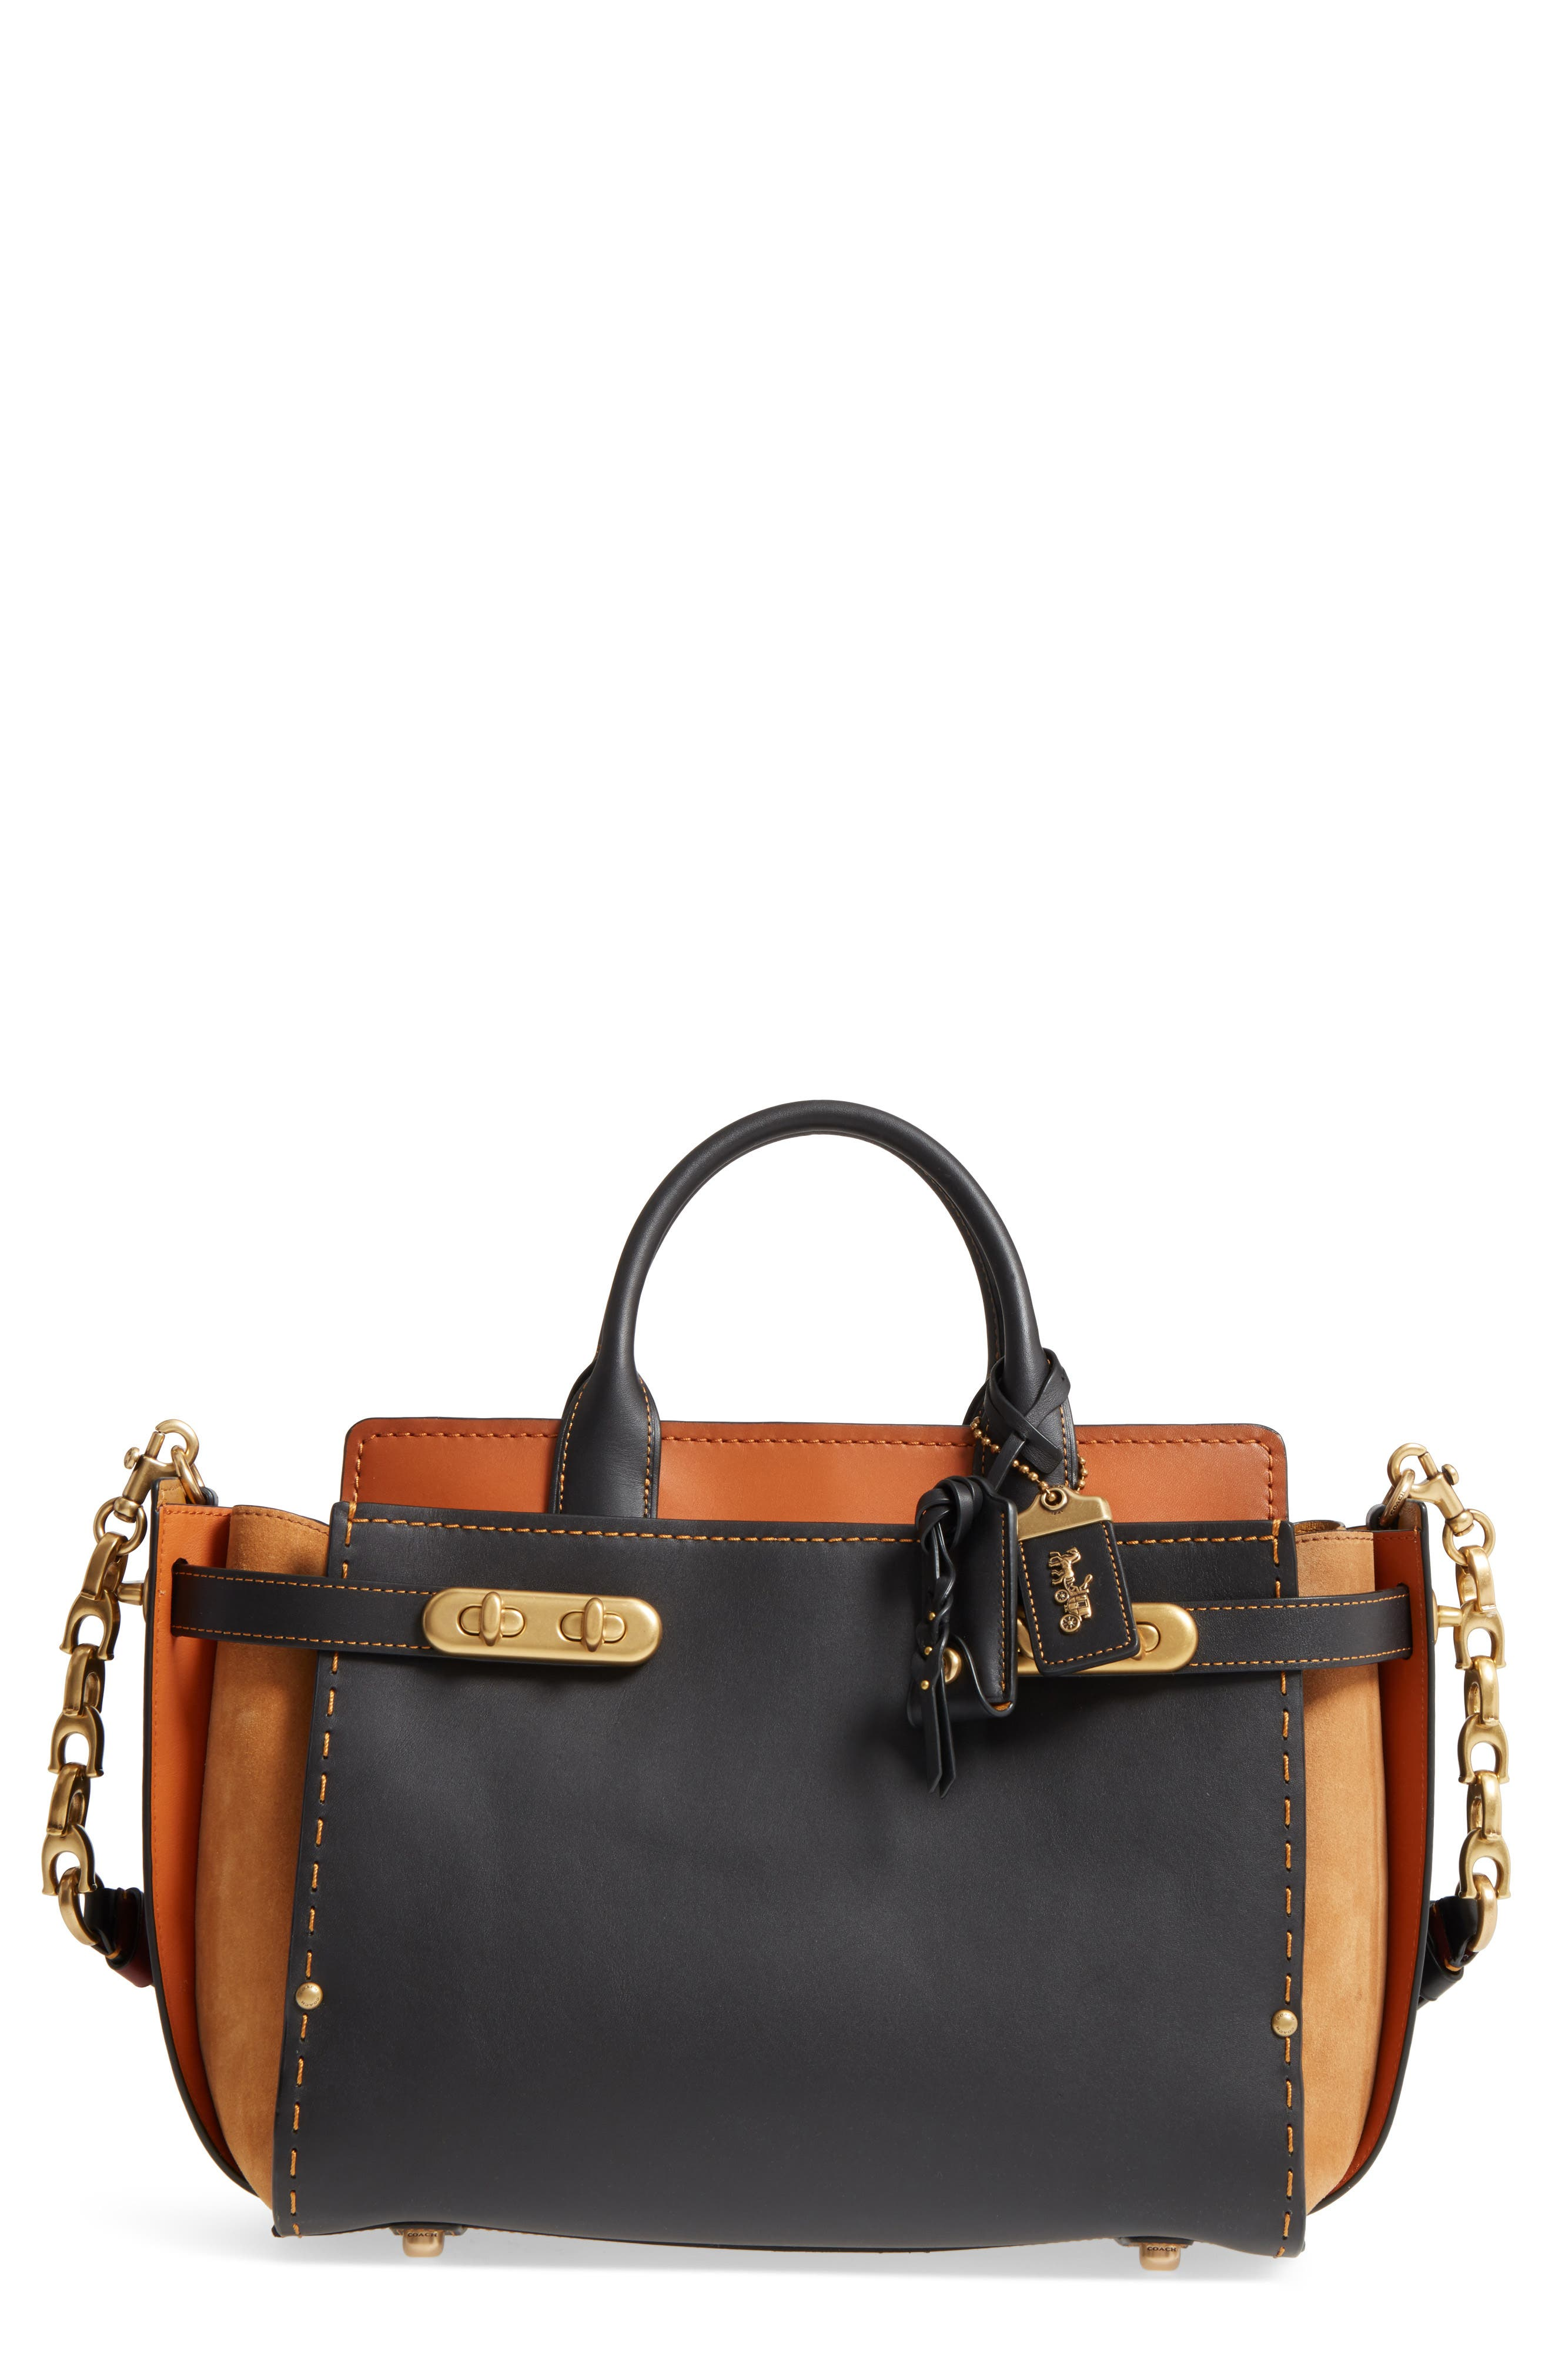 Double Swagger Leather Satchel,                             Main thumbnail 1, color,                             Black Multi